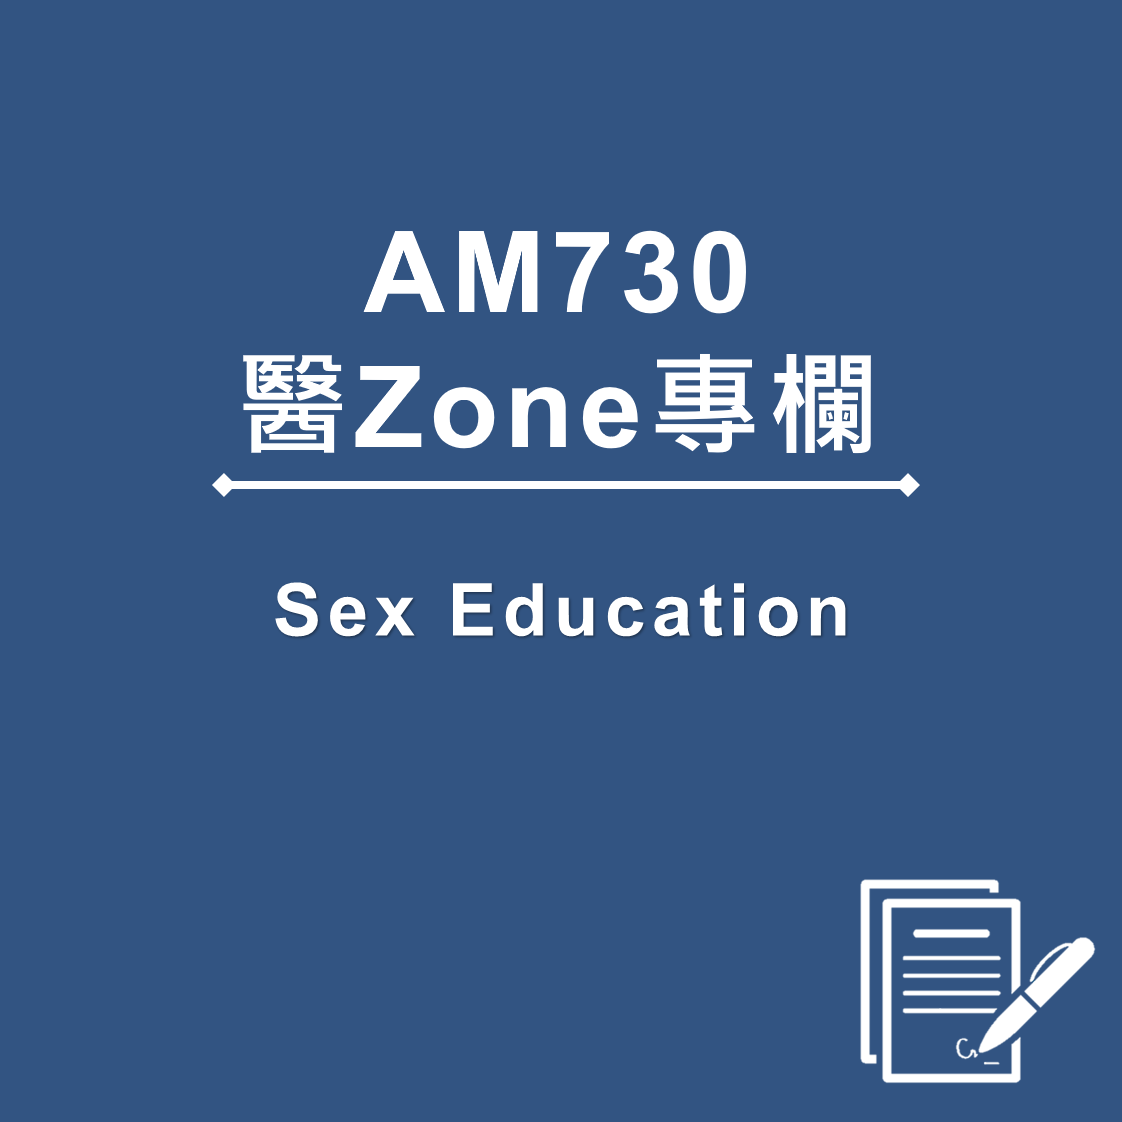 AM730 醫Zone 專欄 - Sex Education